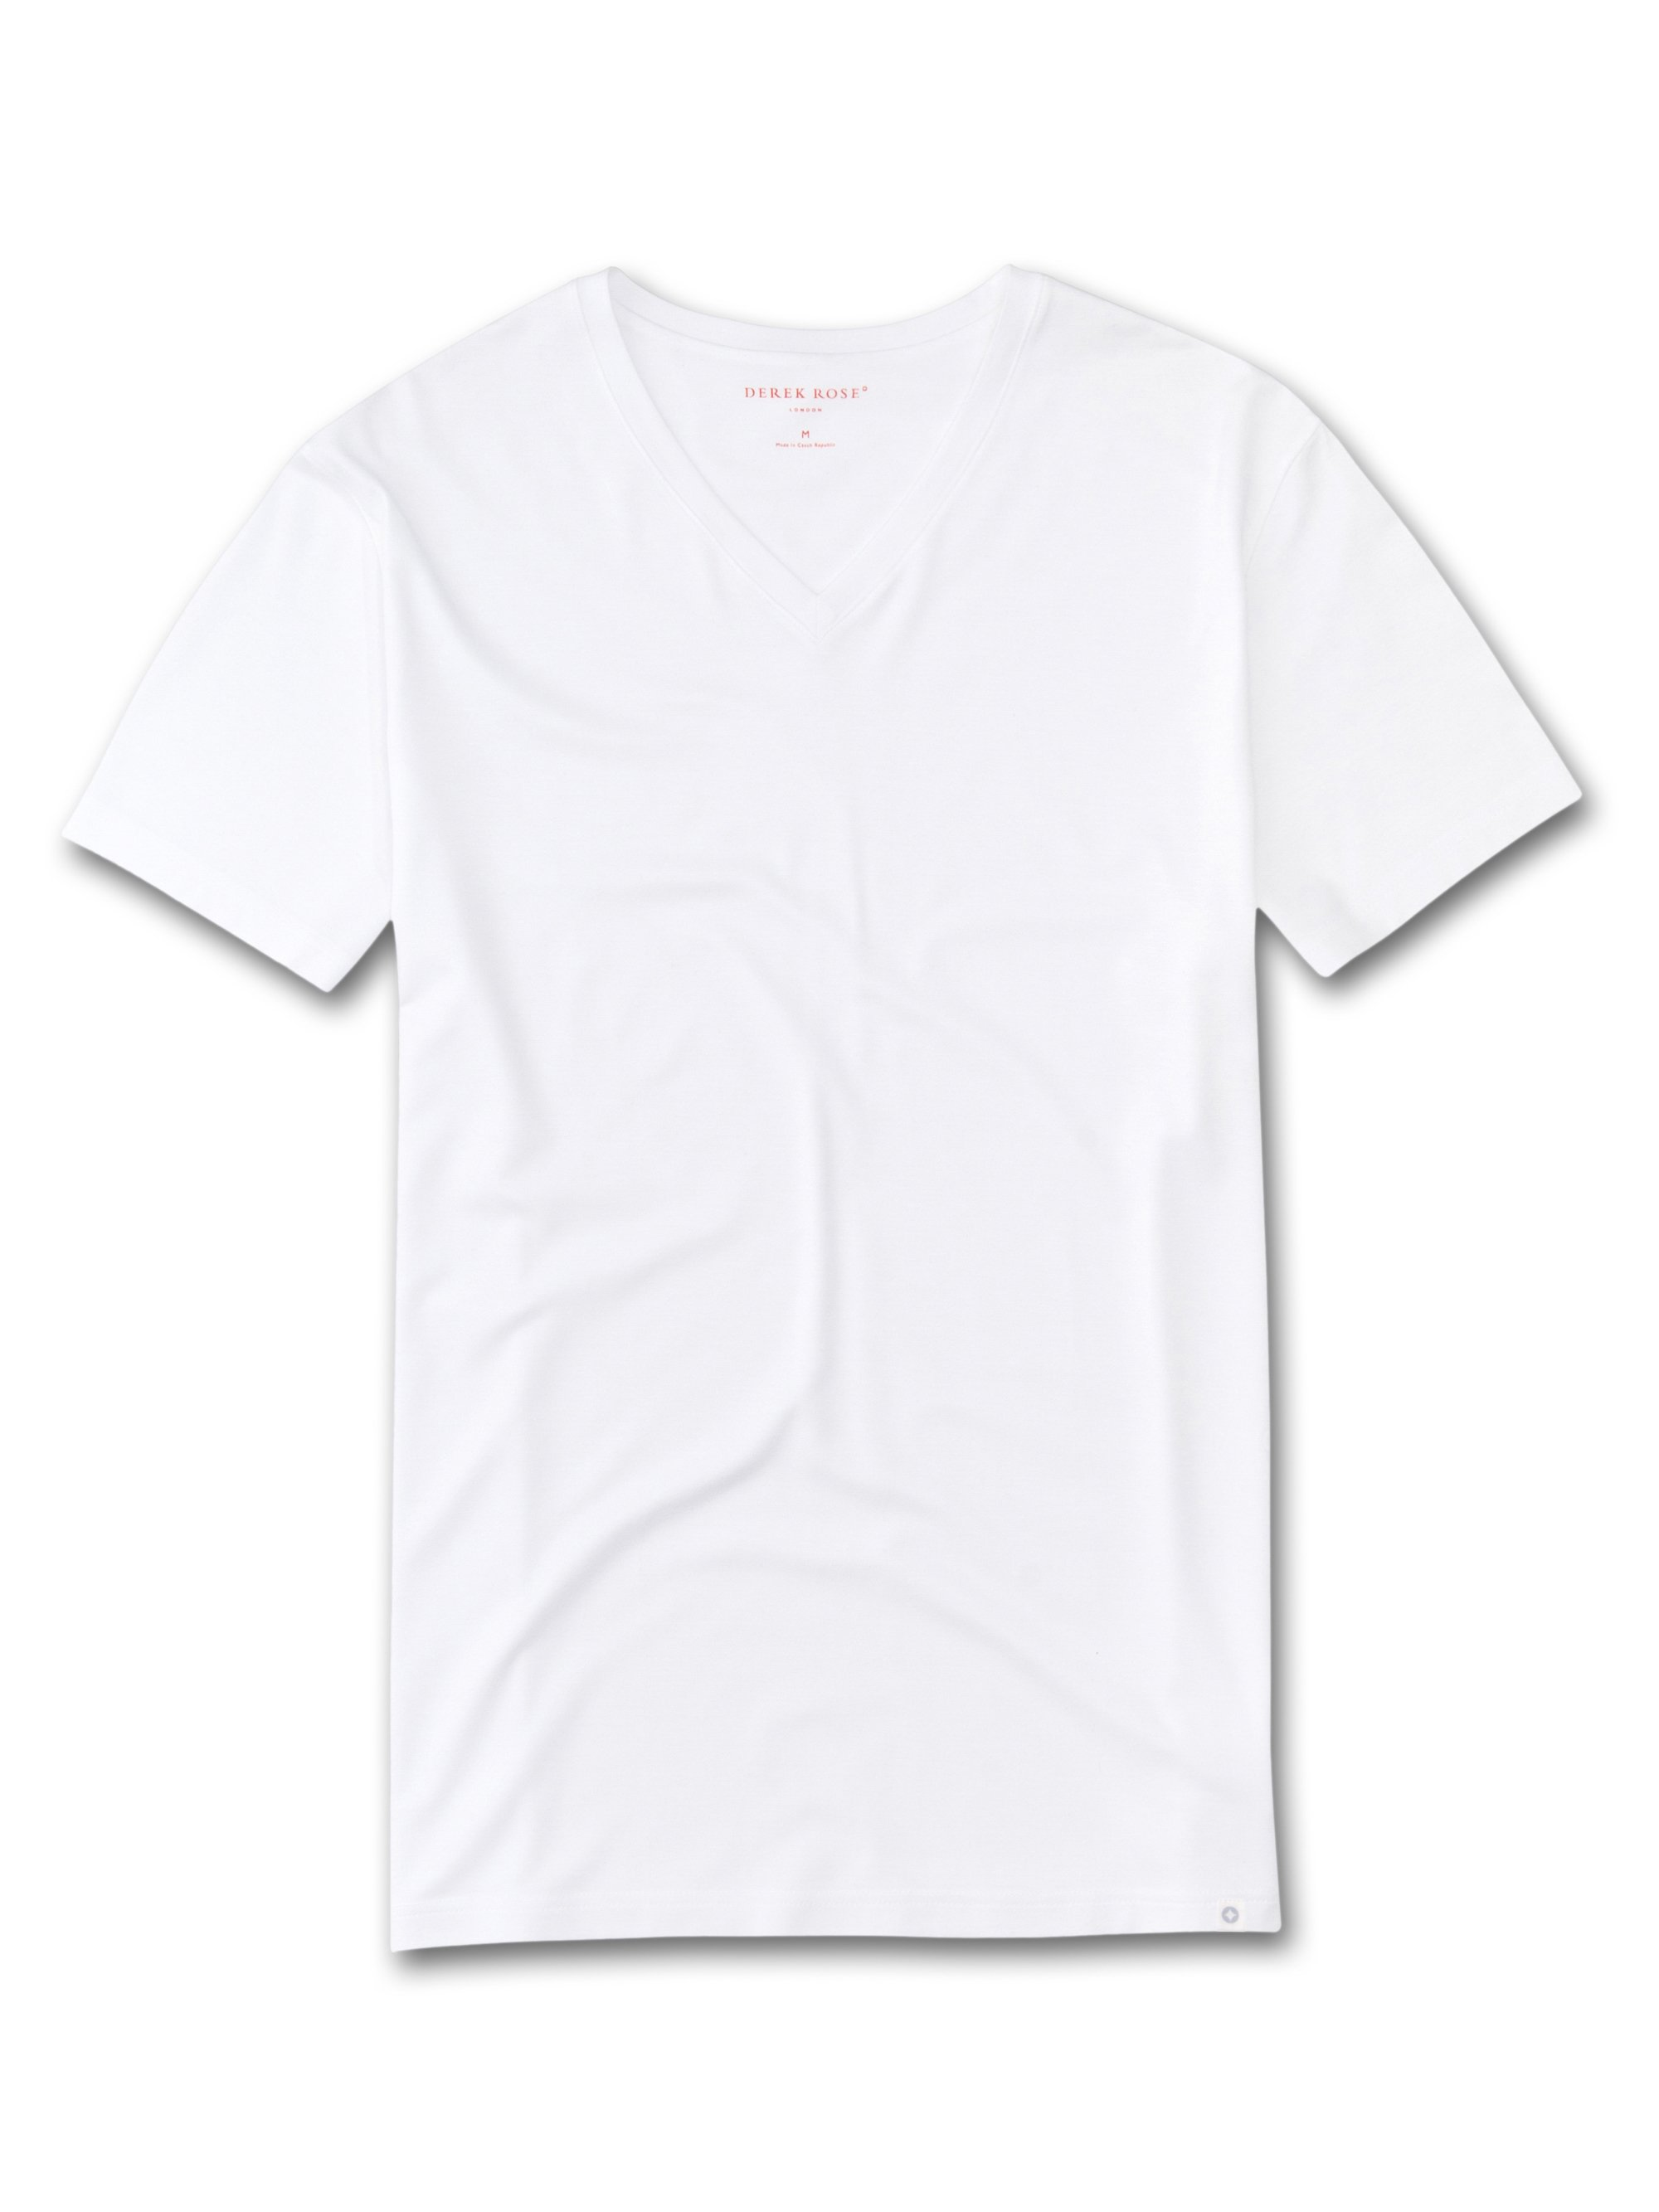 Men's Short Sleeve V-Neck T-Shirt Basel Micro Modal White